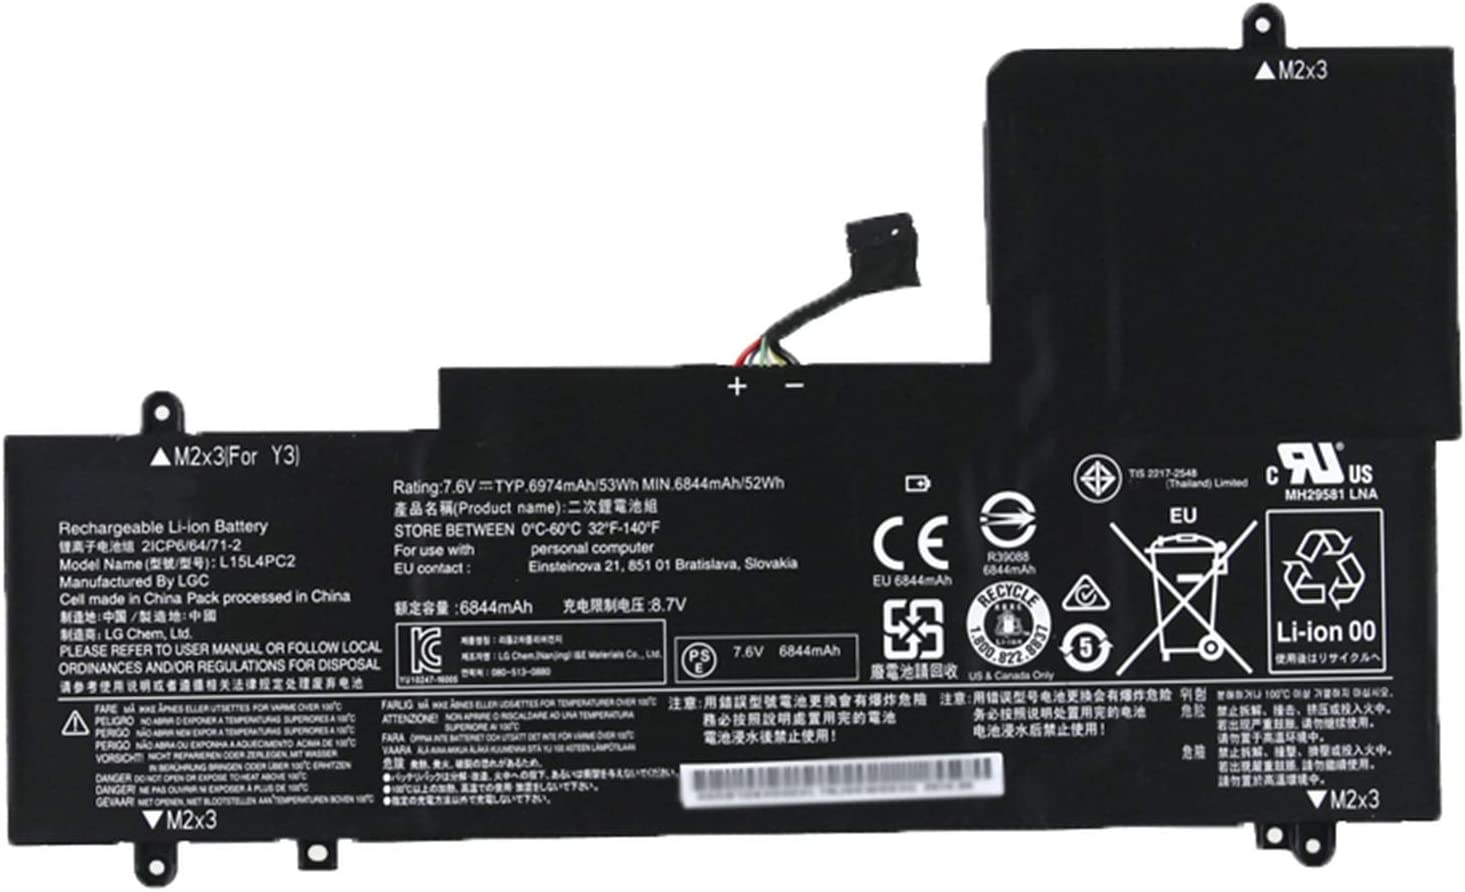 SUNNEAR L15L4PC2 7.6V 53Wh 6974mAh Laptop Battery Replacement for Lenovo Yoga 710 14IKB 14ISK 15IKB 15ISK Series Notebook L15M4PC2